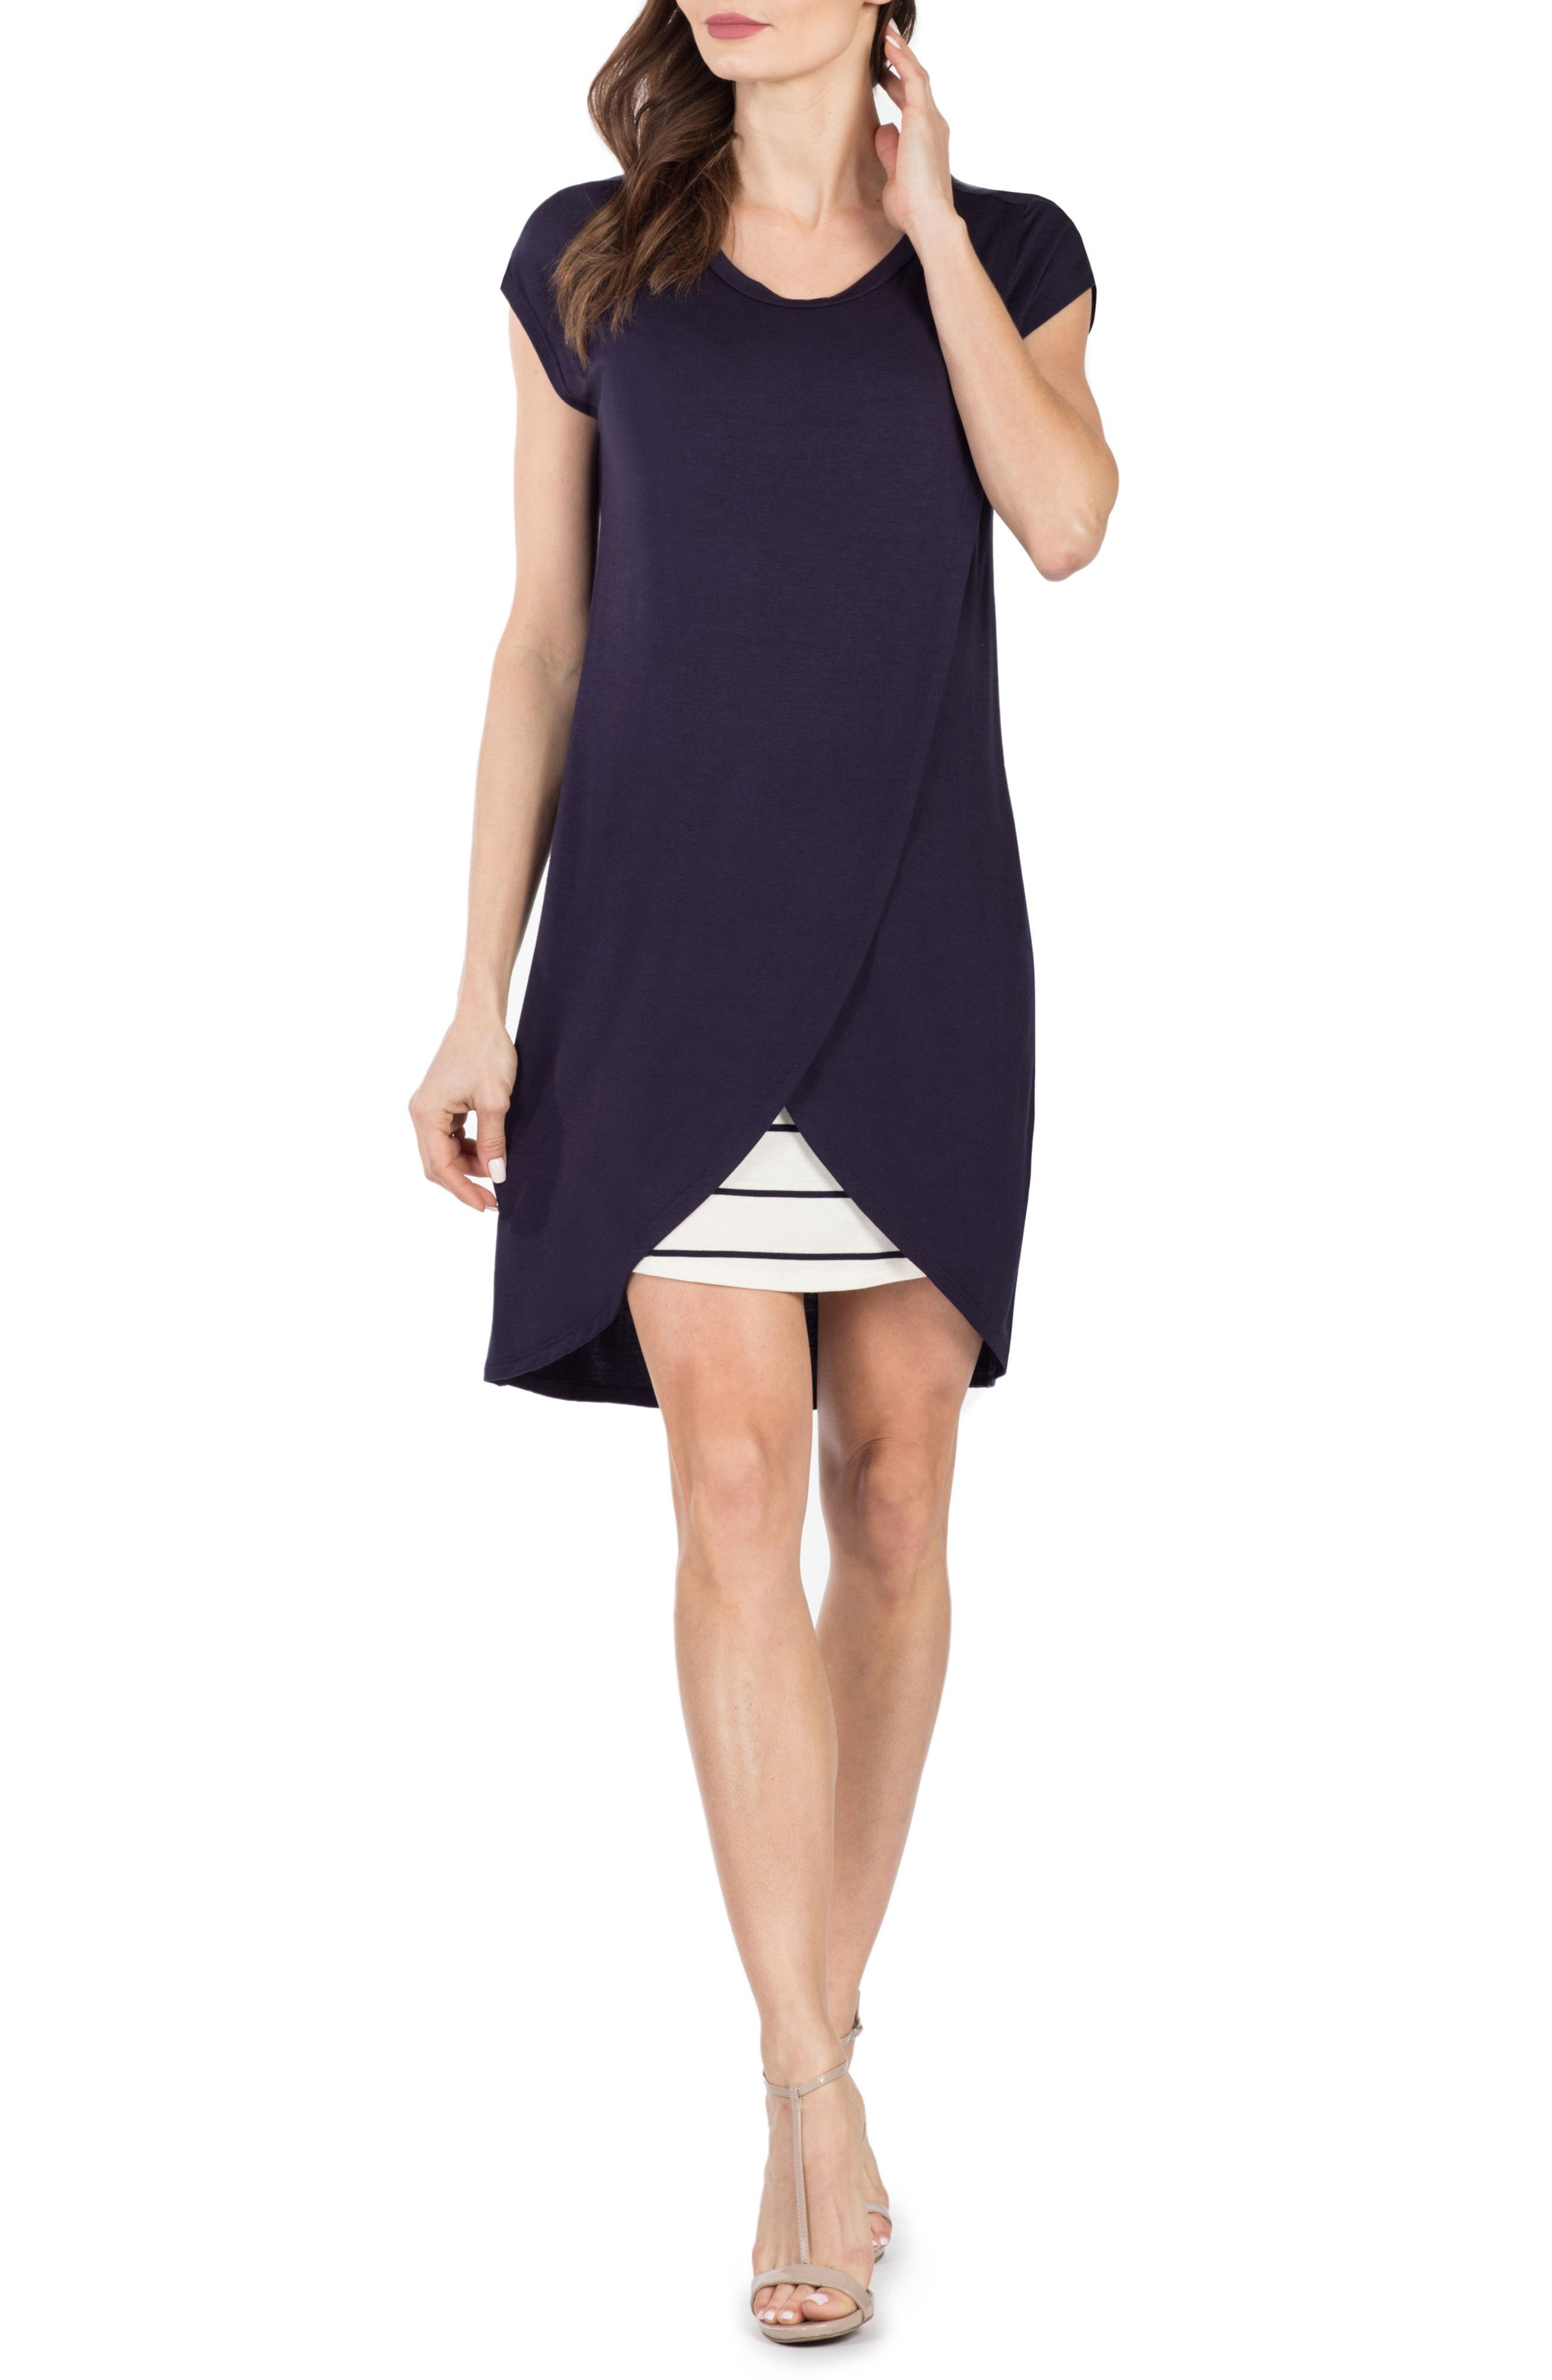 Lille Layered Maternity/Nursing Sheath Dress,                         Main,                         color, NAVY/ WHITE STRIPE